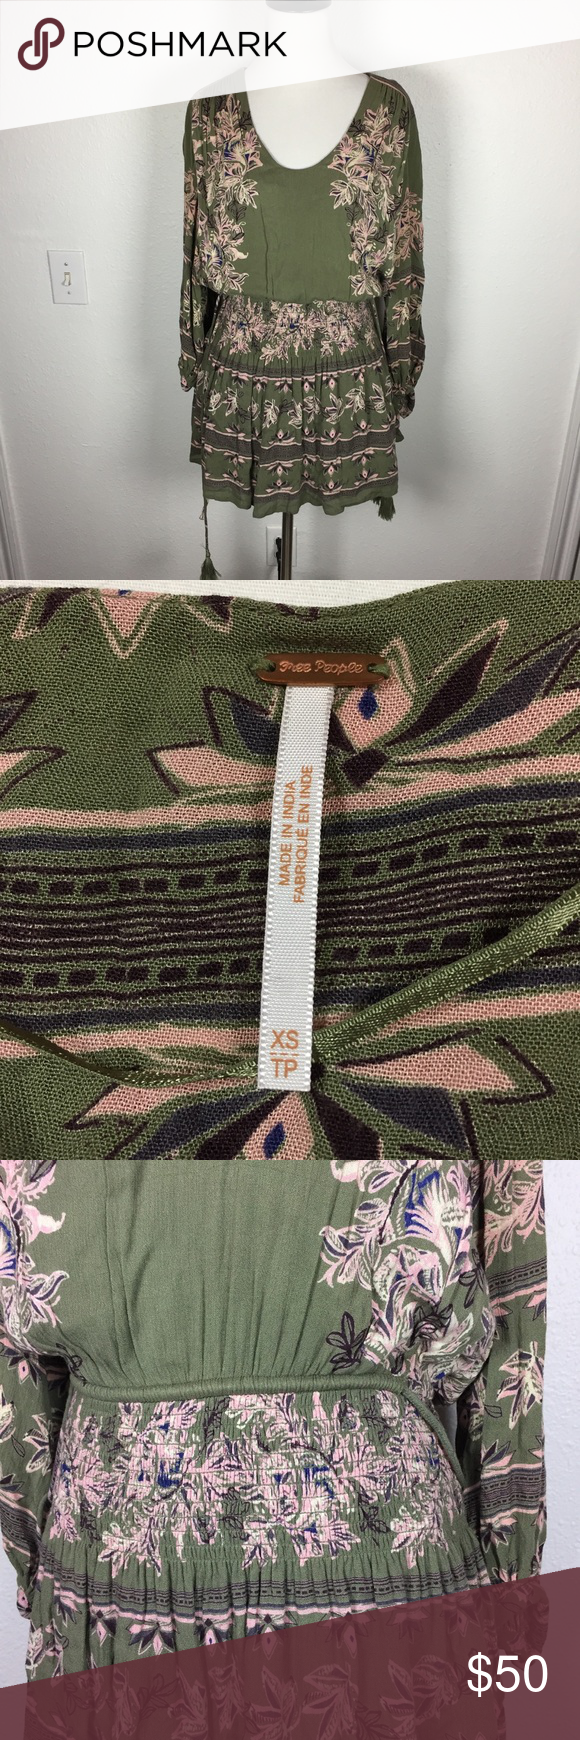 Cos green dress 2018  Free People olive green pink floral festival dress in   My Posh